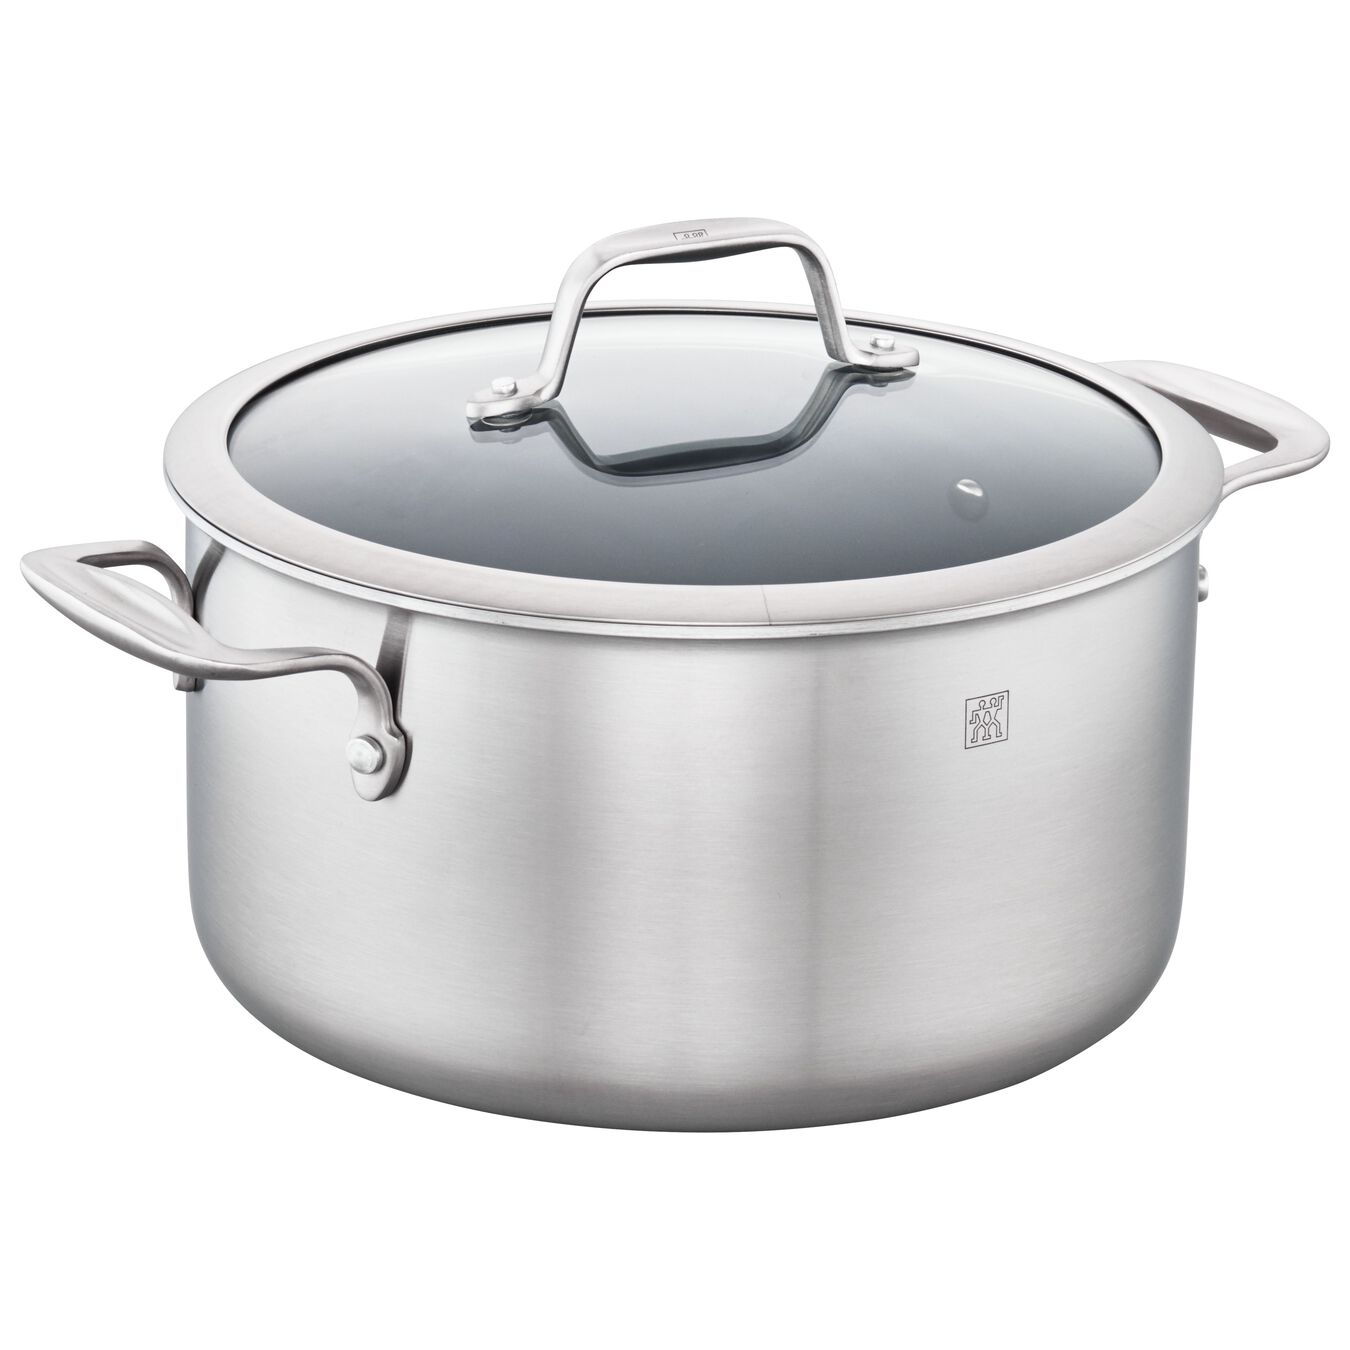 3-ply 6-qt Stainless Steel Ceramic Nonstick Dutch Oven,,large 1